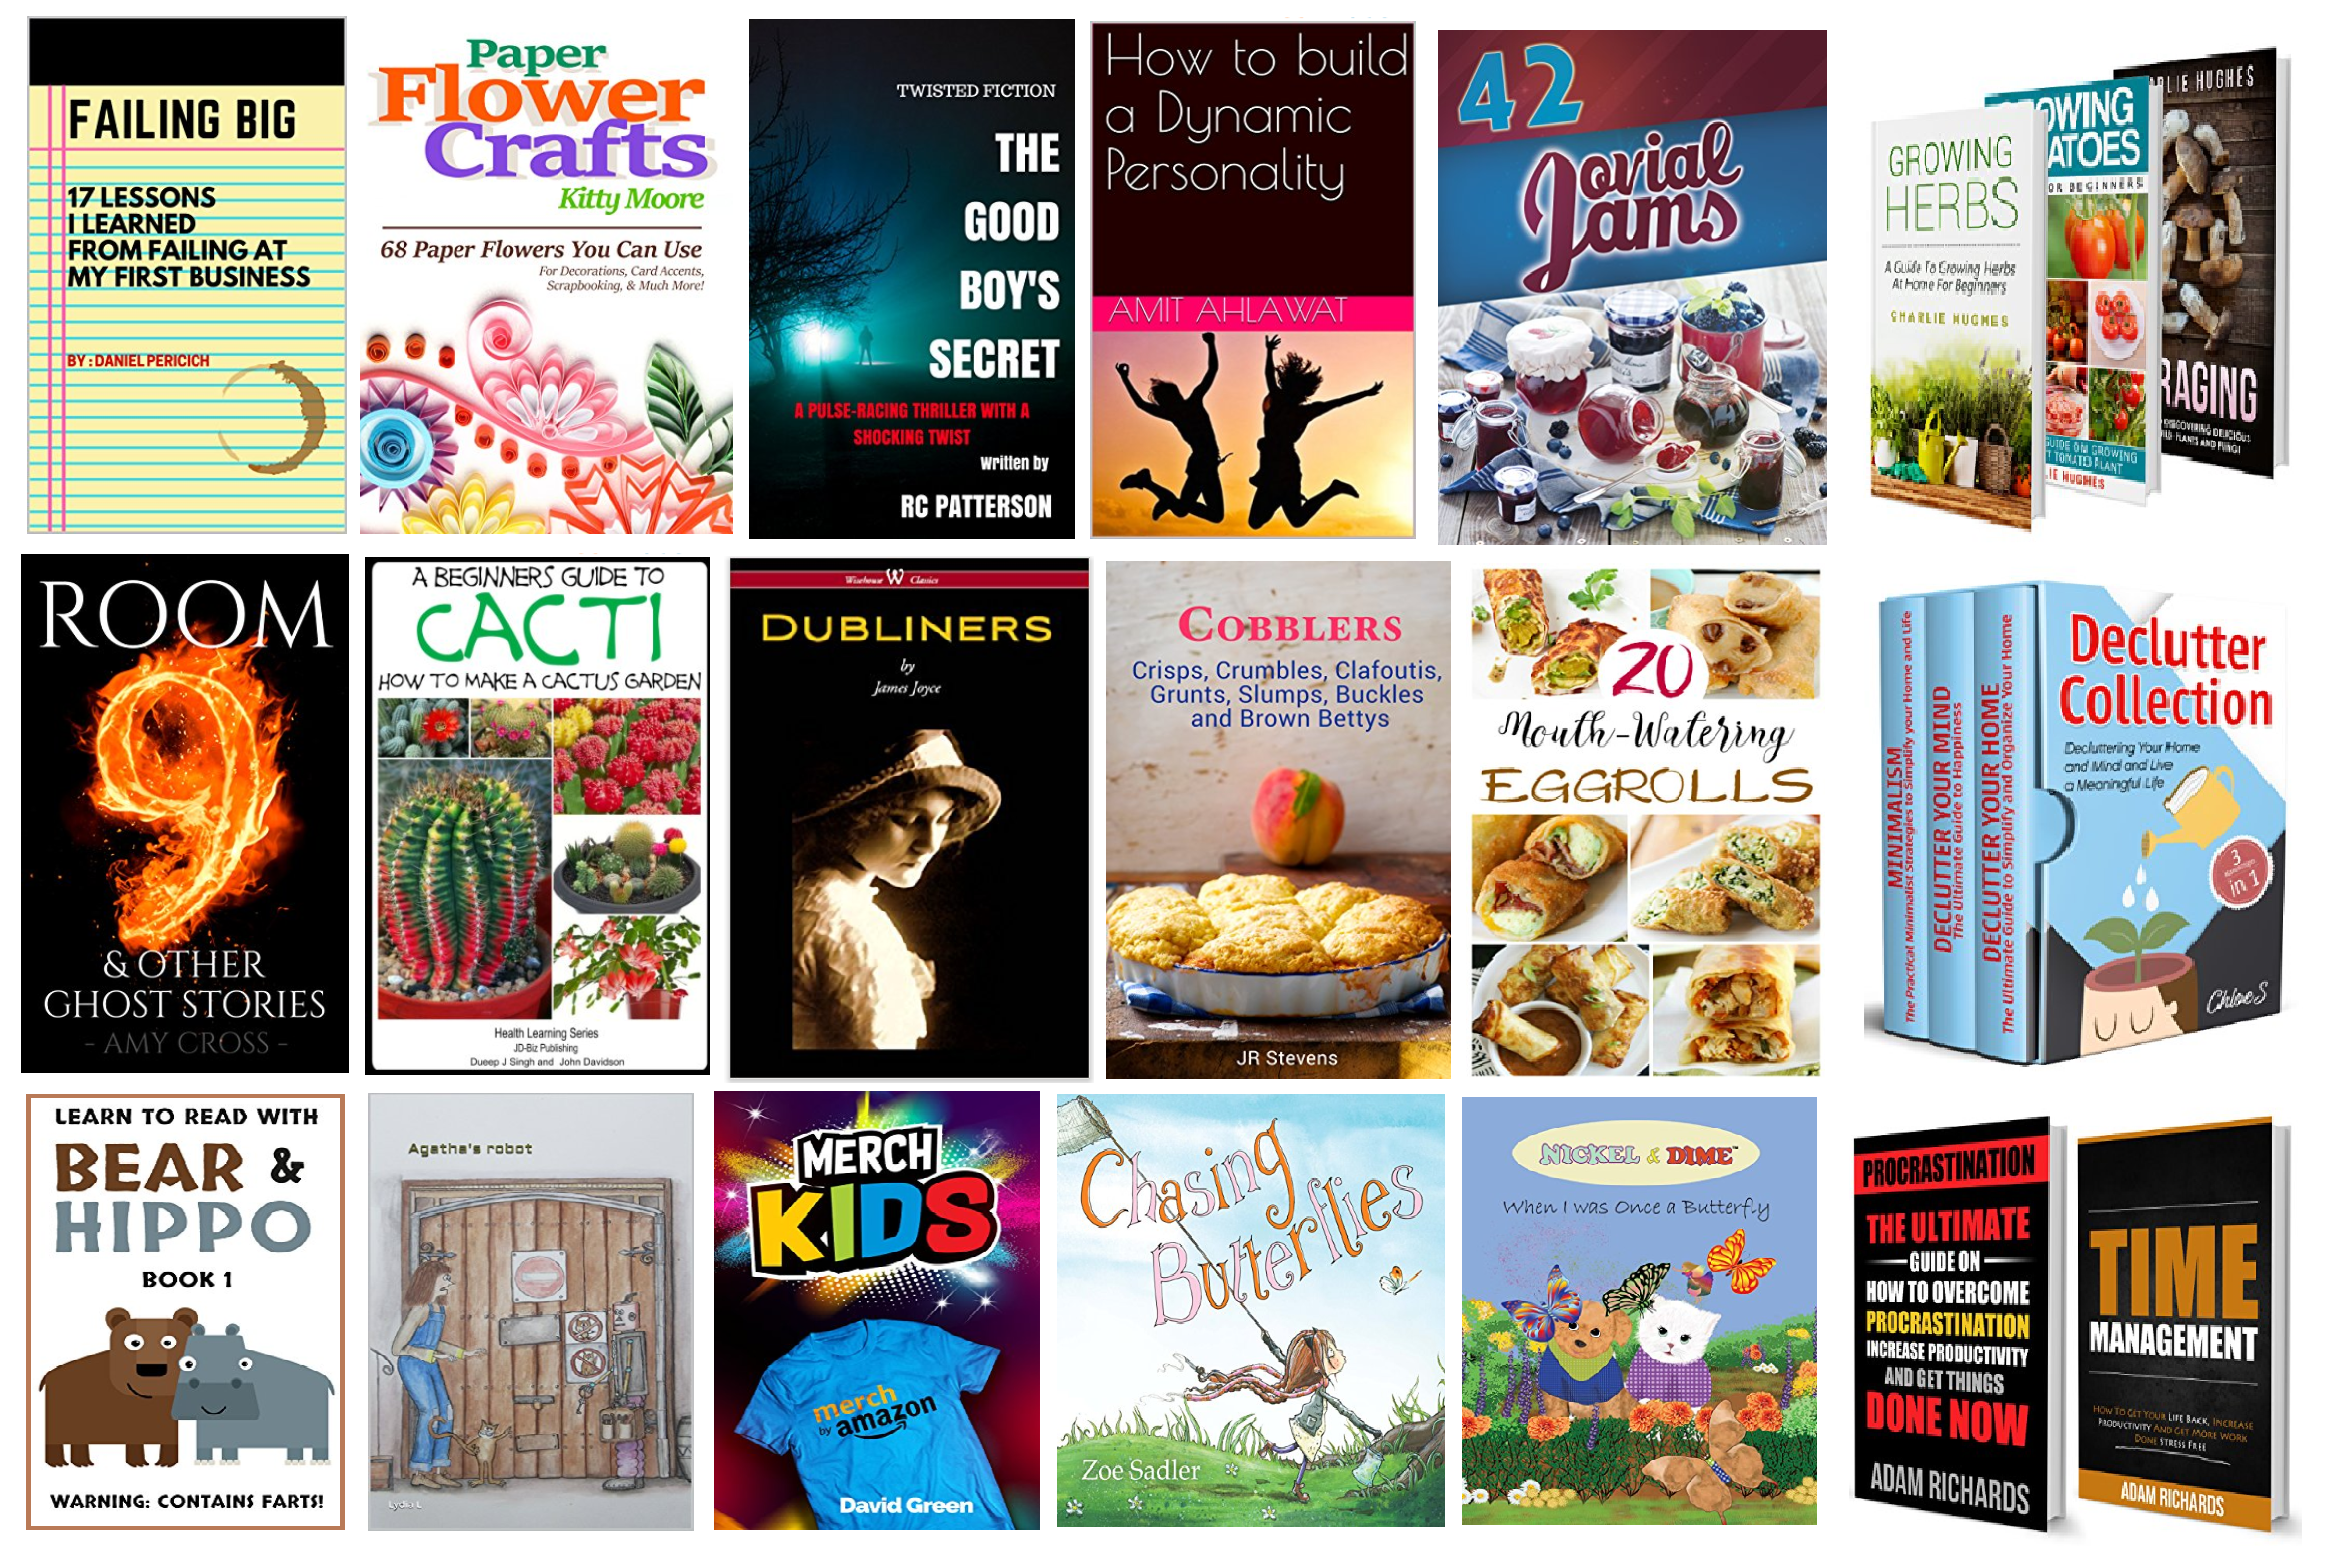 10 Free Kindle Books For 6 2 18 Plus 3 Free Box Sets And 5